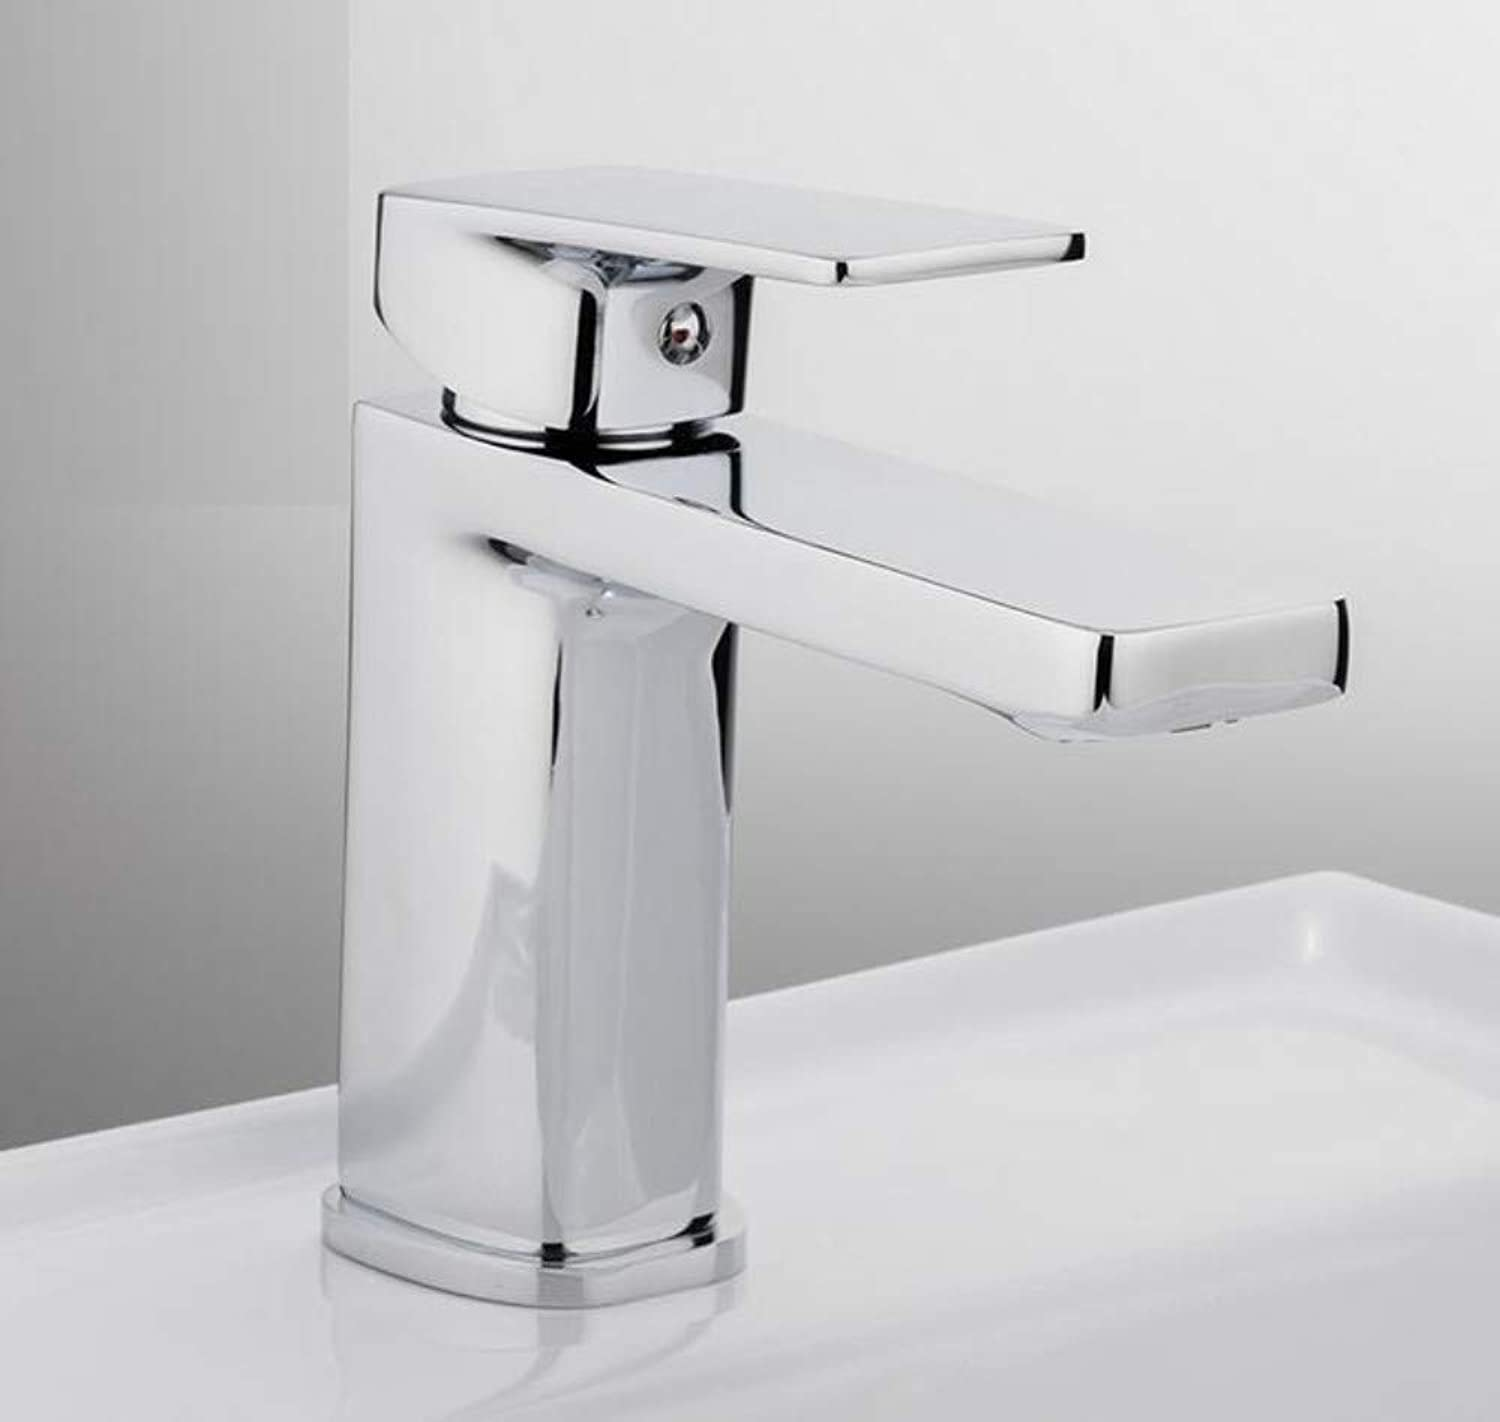 Wasserhahn Waschbecken Bathroom Faucet Chrome Basin Faucets Sink Mixer Tap Vanity Hot Cold And Water Tap Washroom